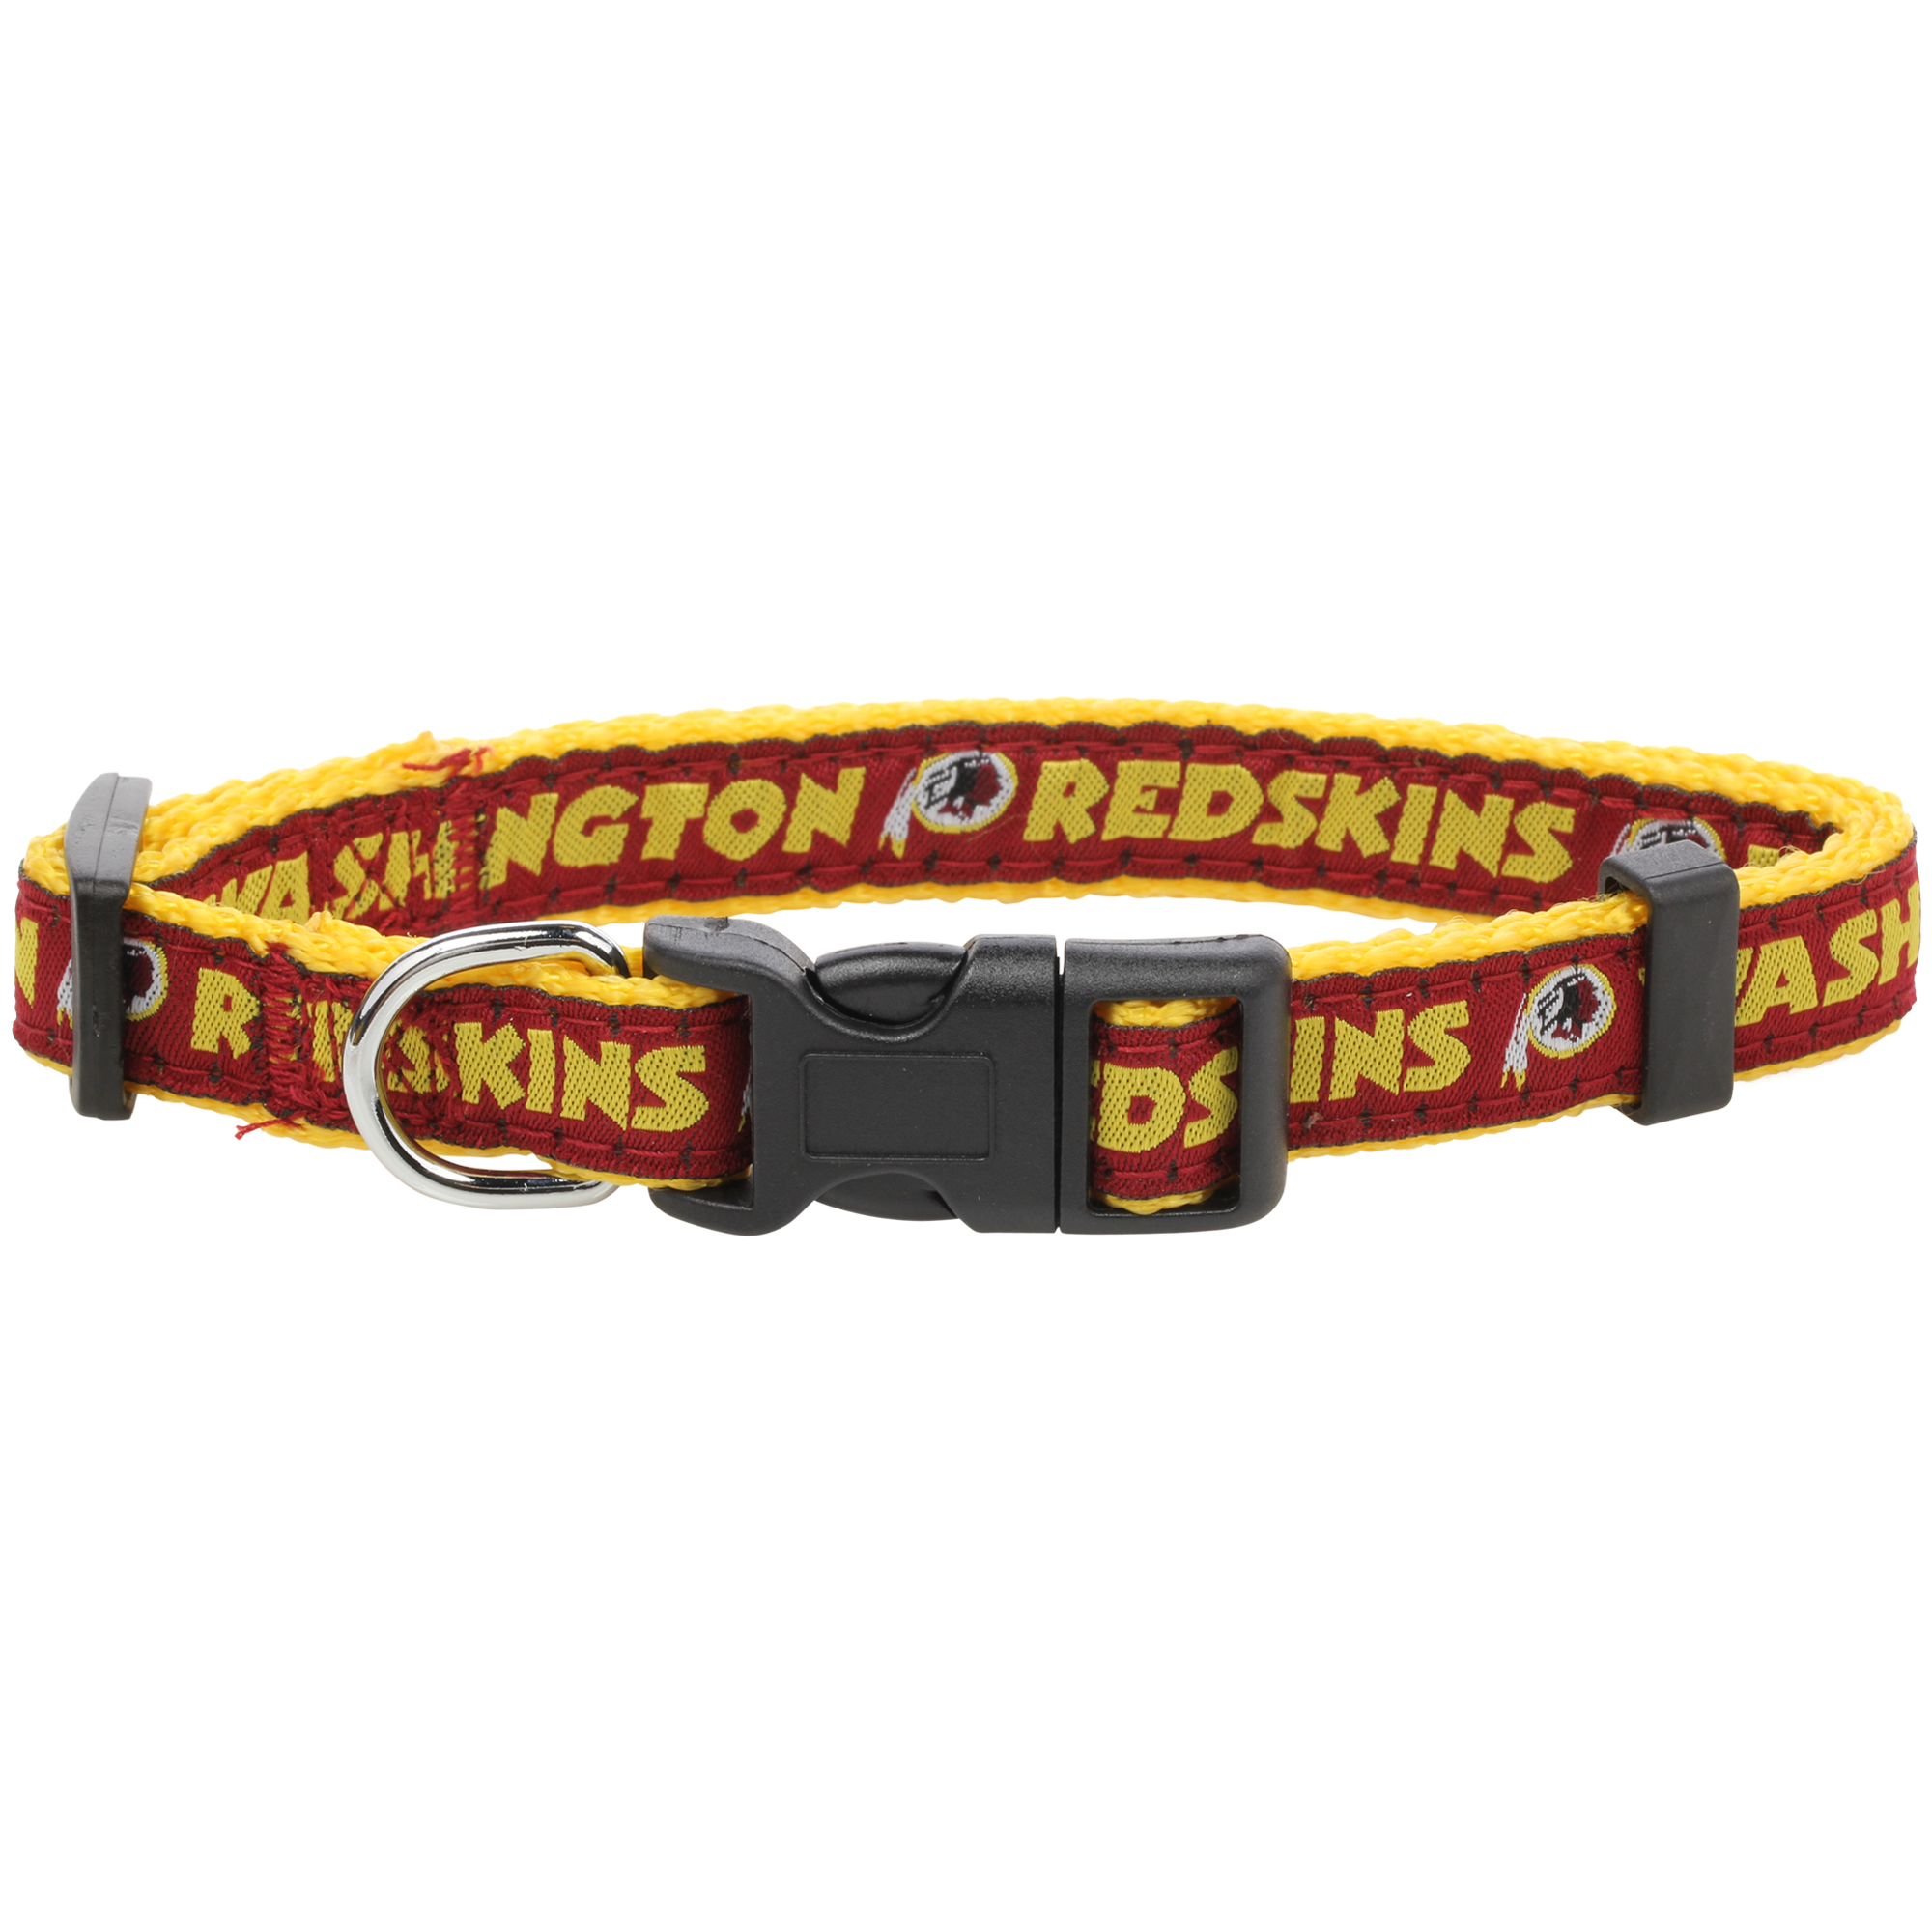 Washington Redskins Collar